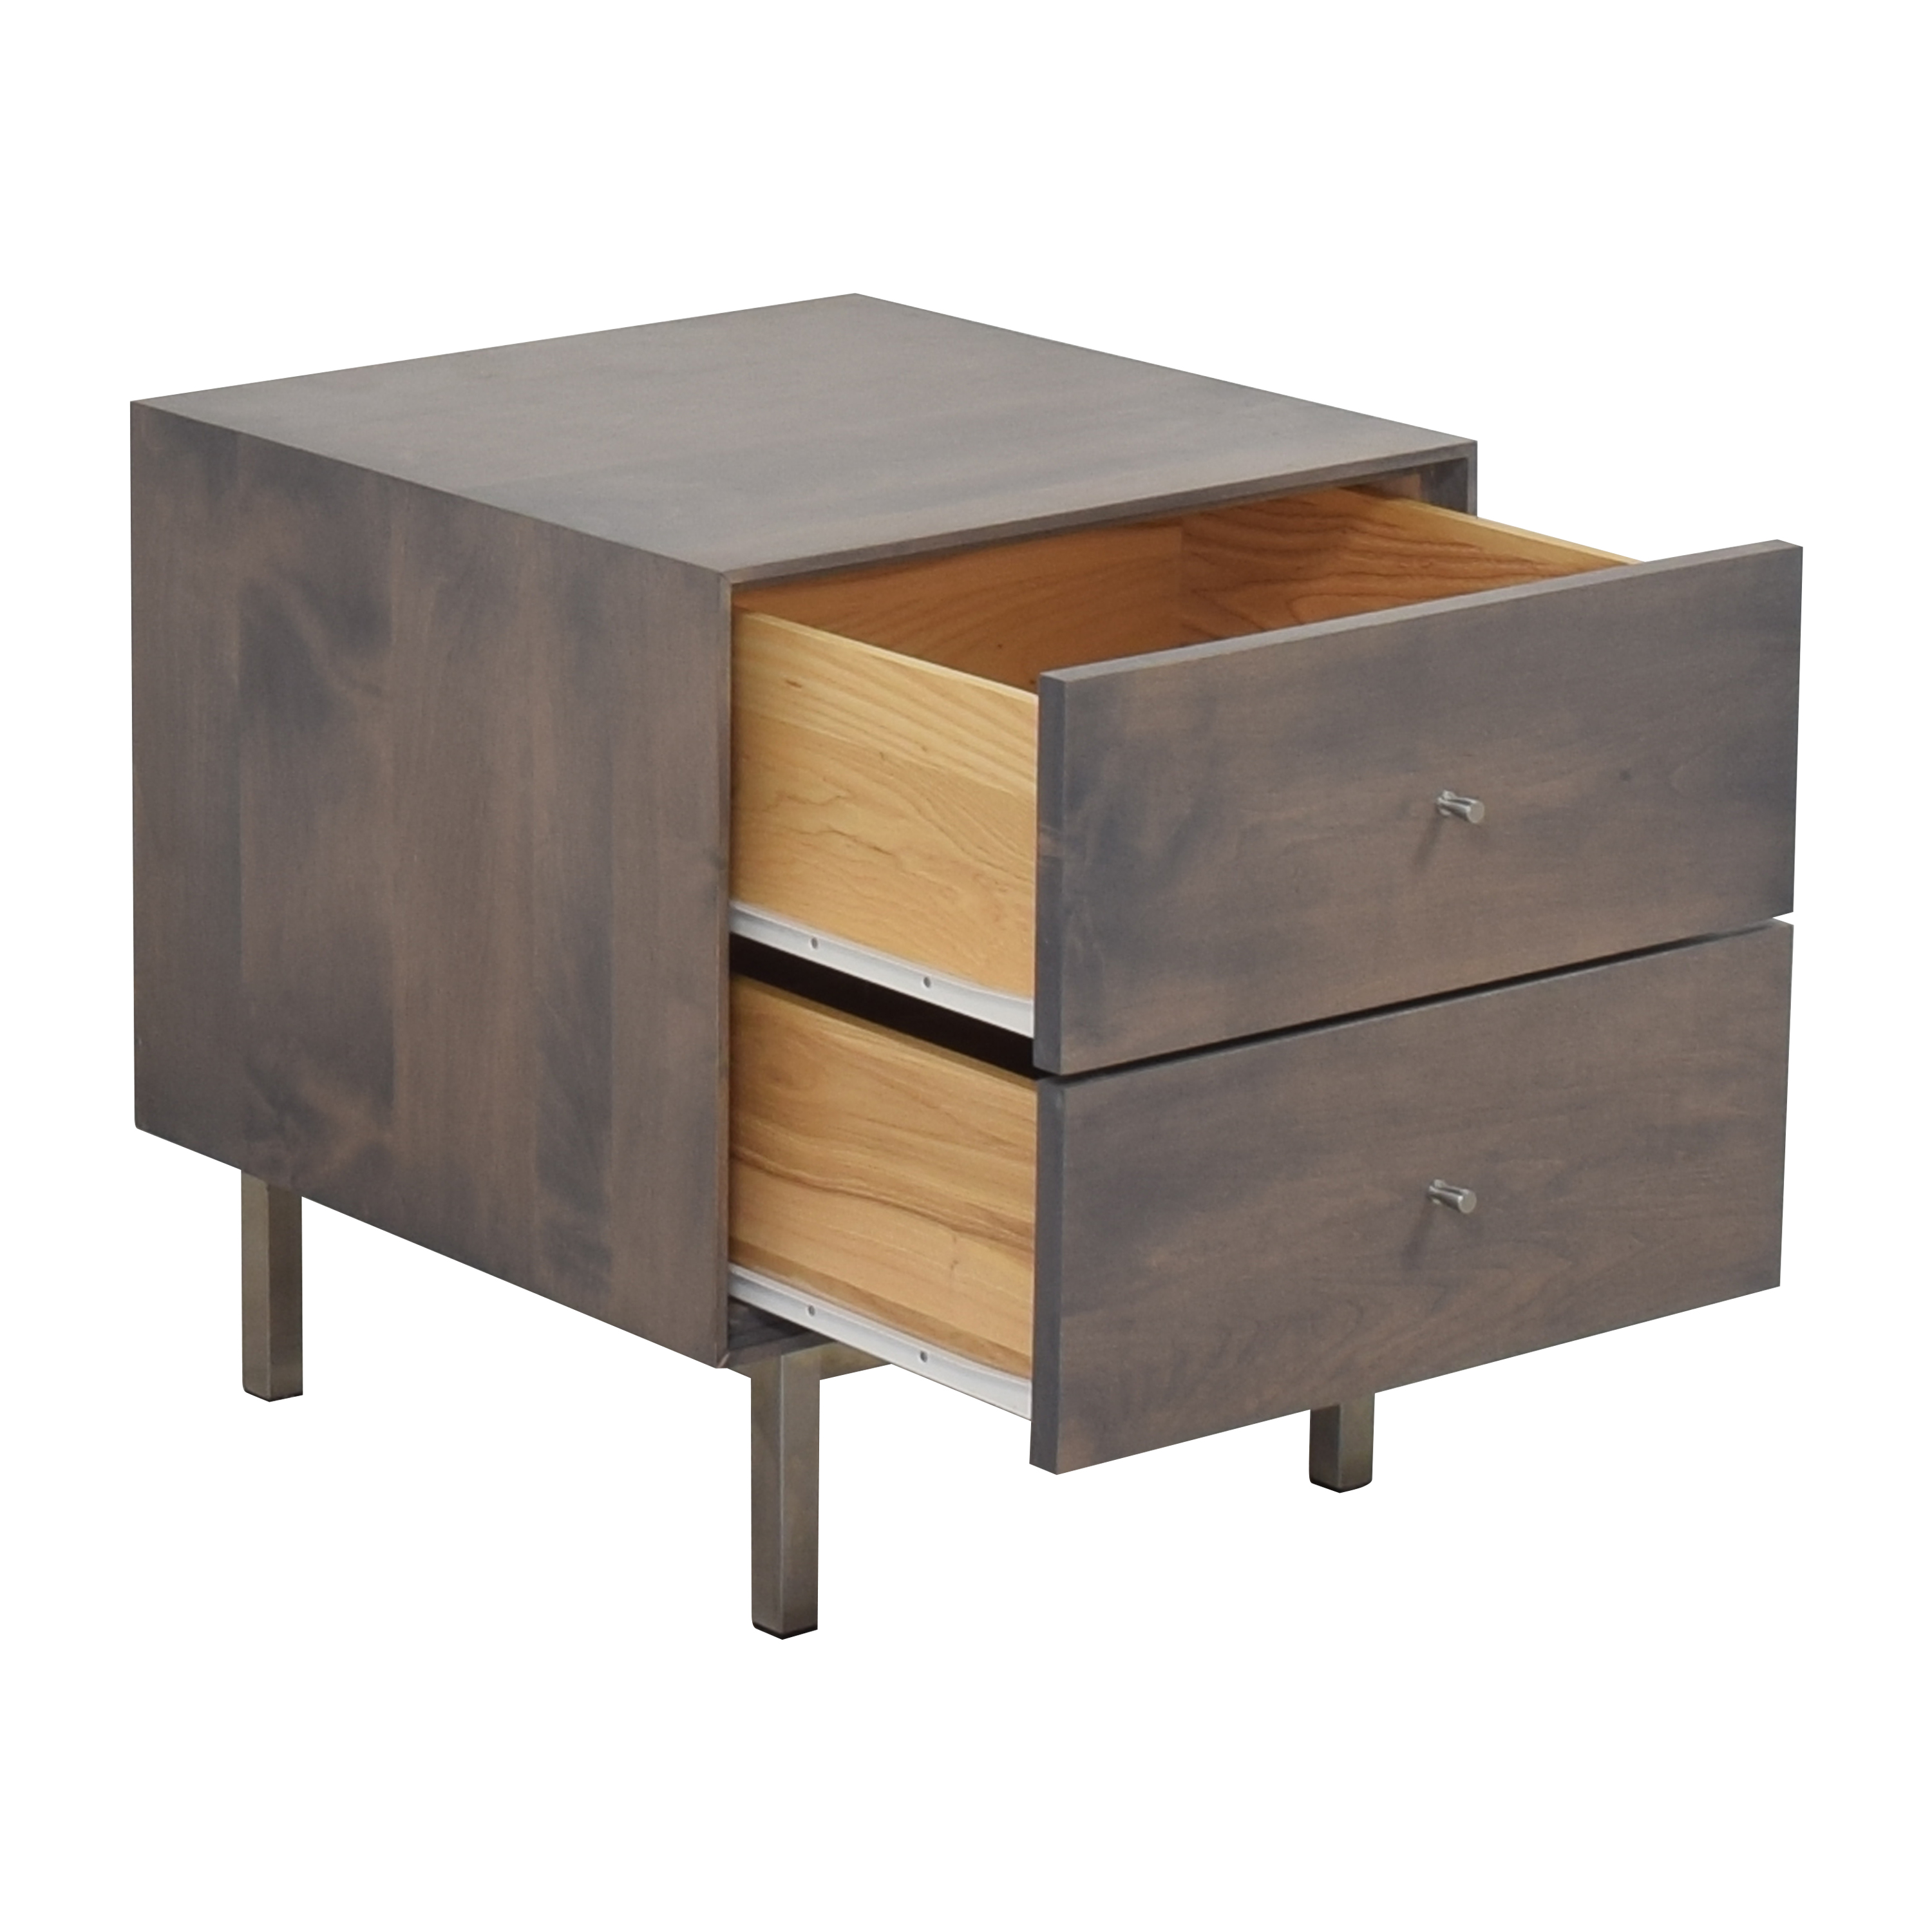 Room & Board Room & Board Hudson Two Drawer Nightstand End Tables